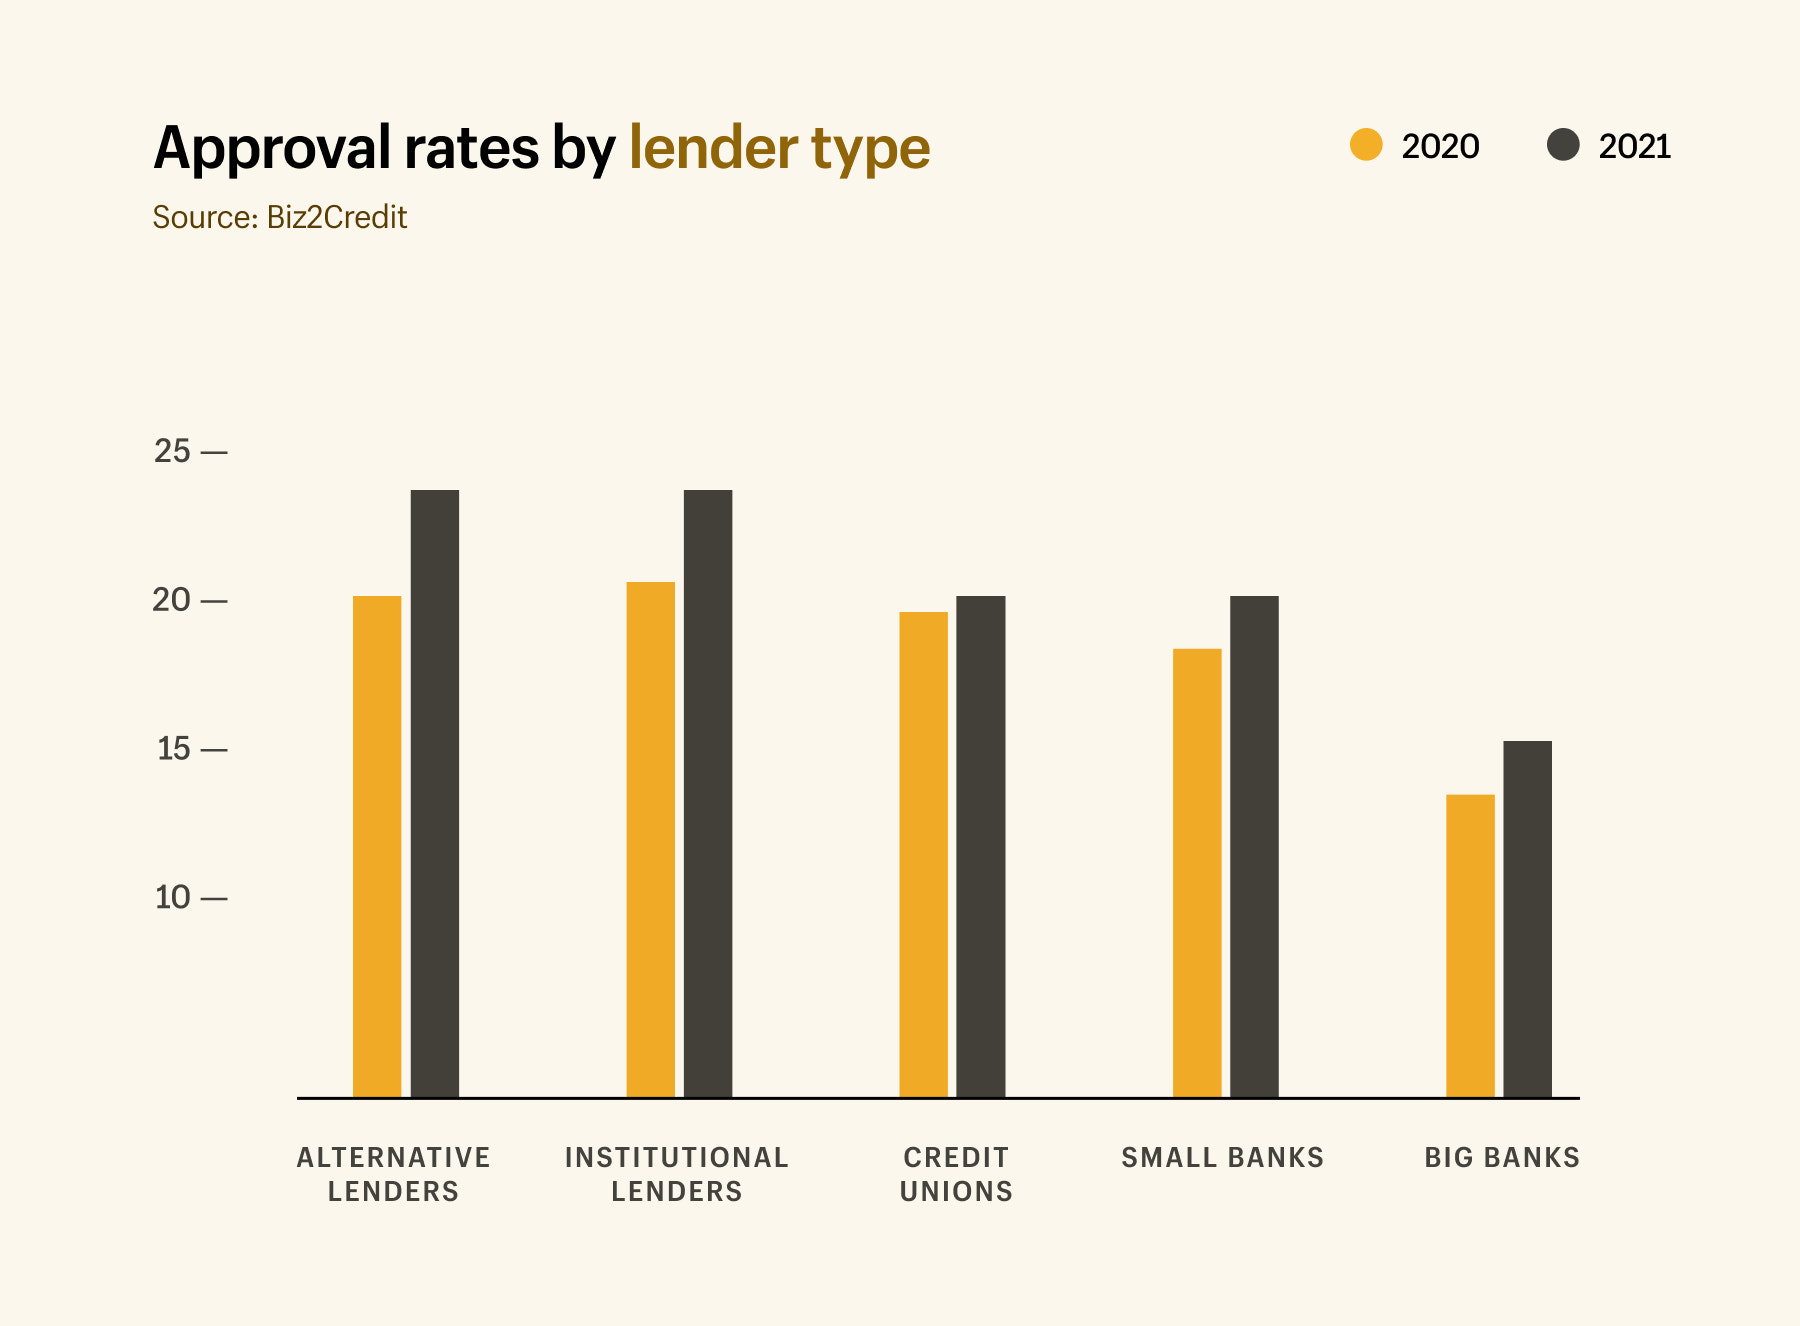 Approval rates by lender type